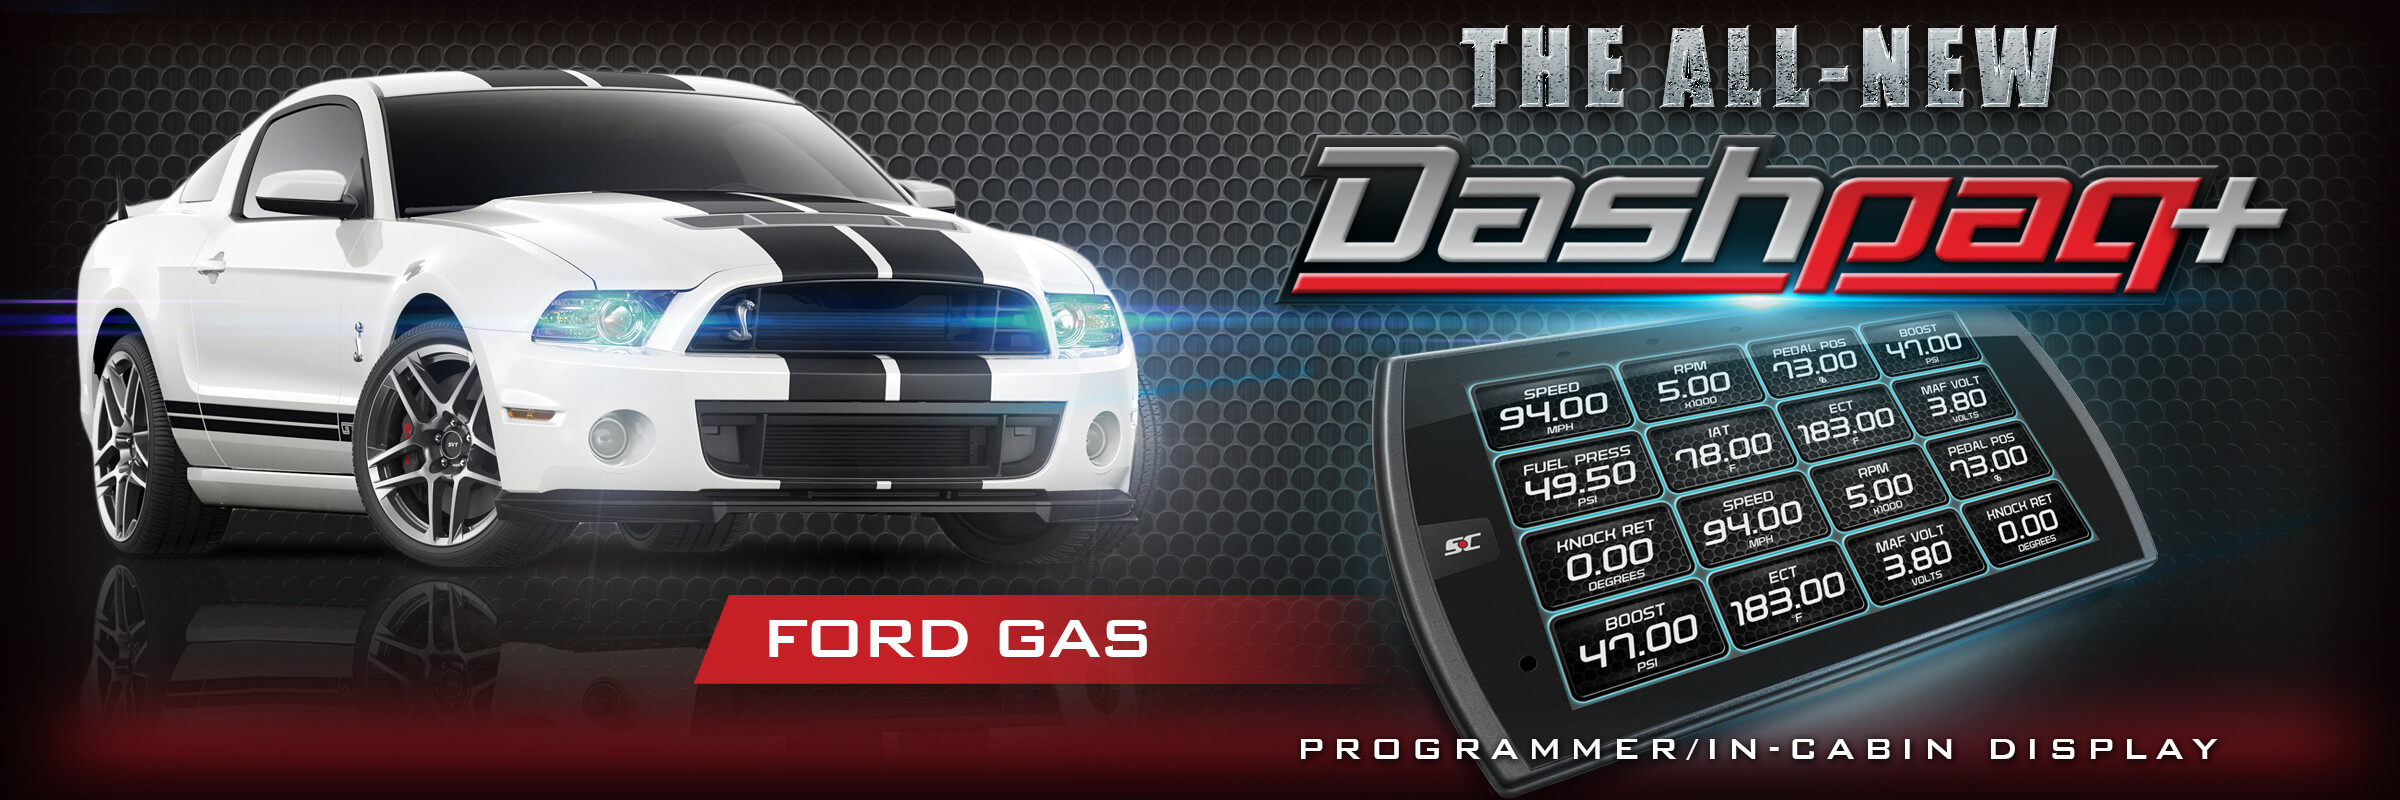 Add Horsepower and Torque to Your Ford Gas Vehicle with